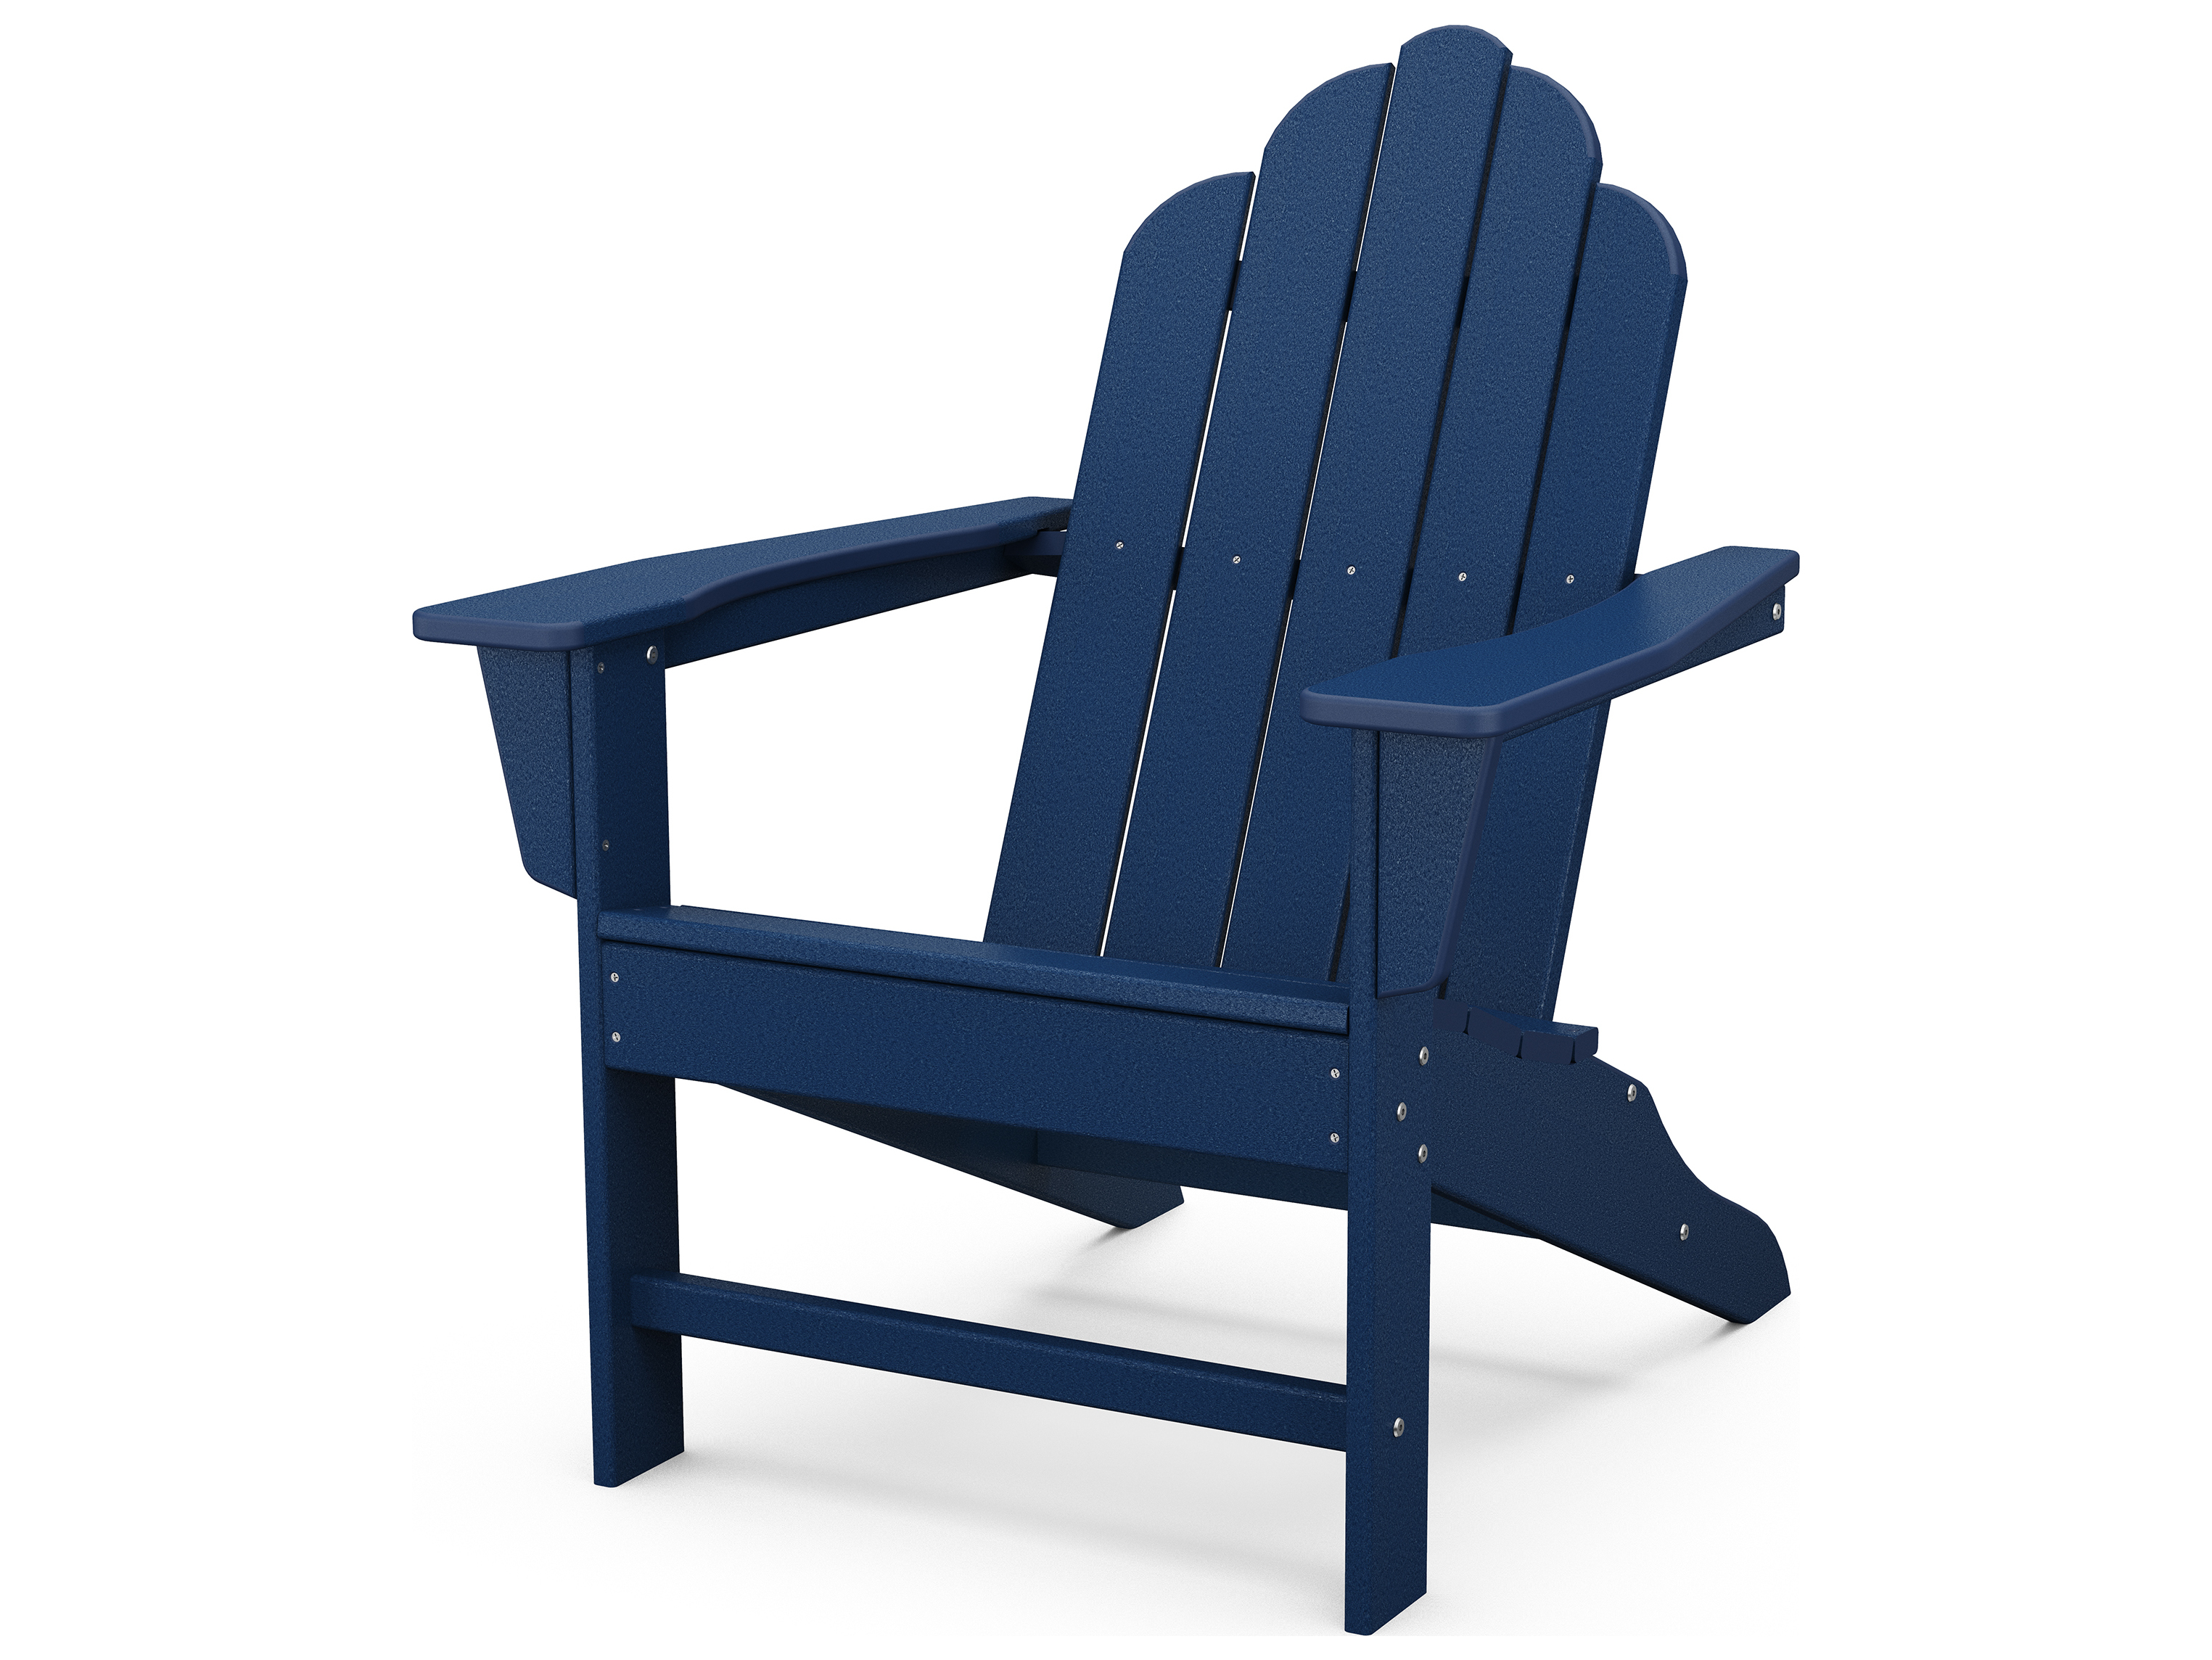 POLYWOOD Long Island Recycled Plastic Adirondack Chair